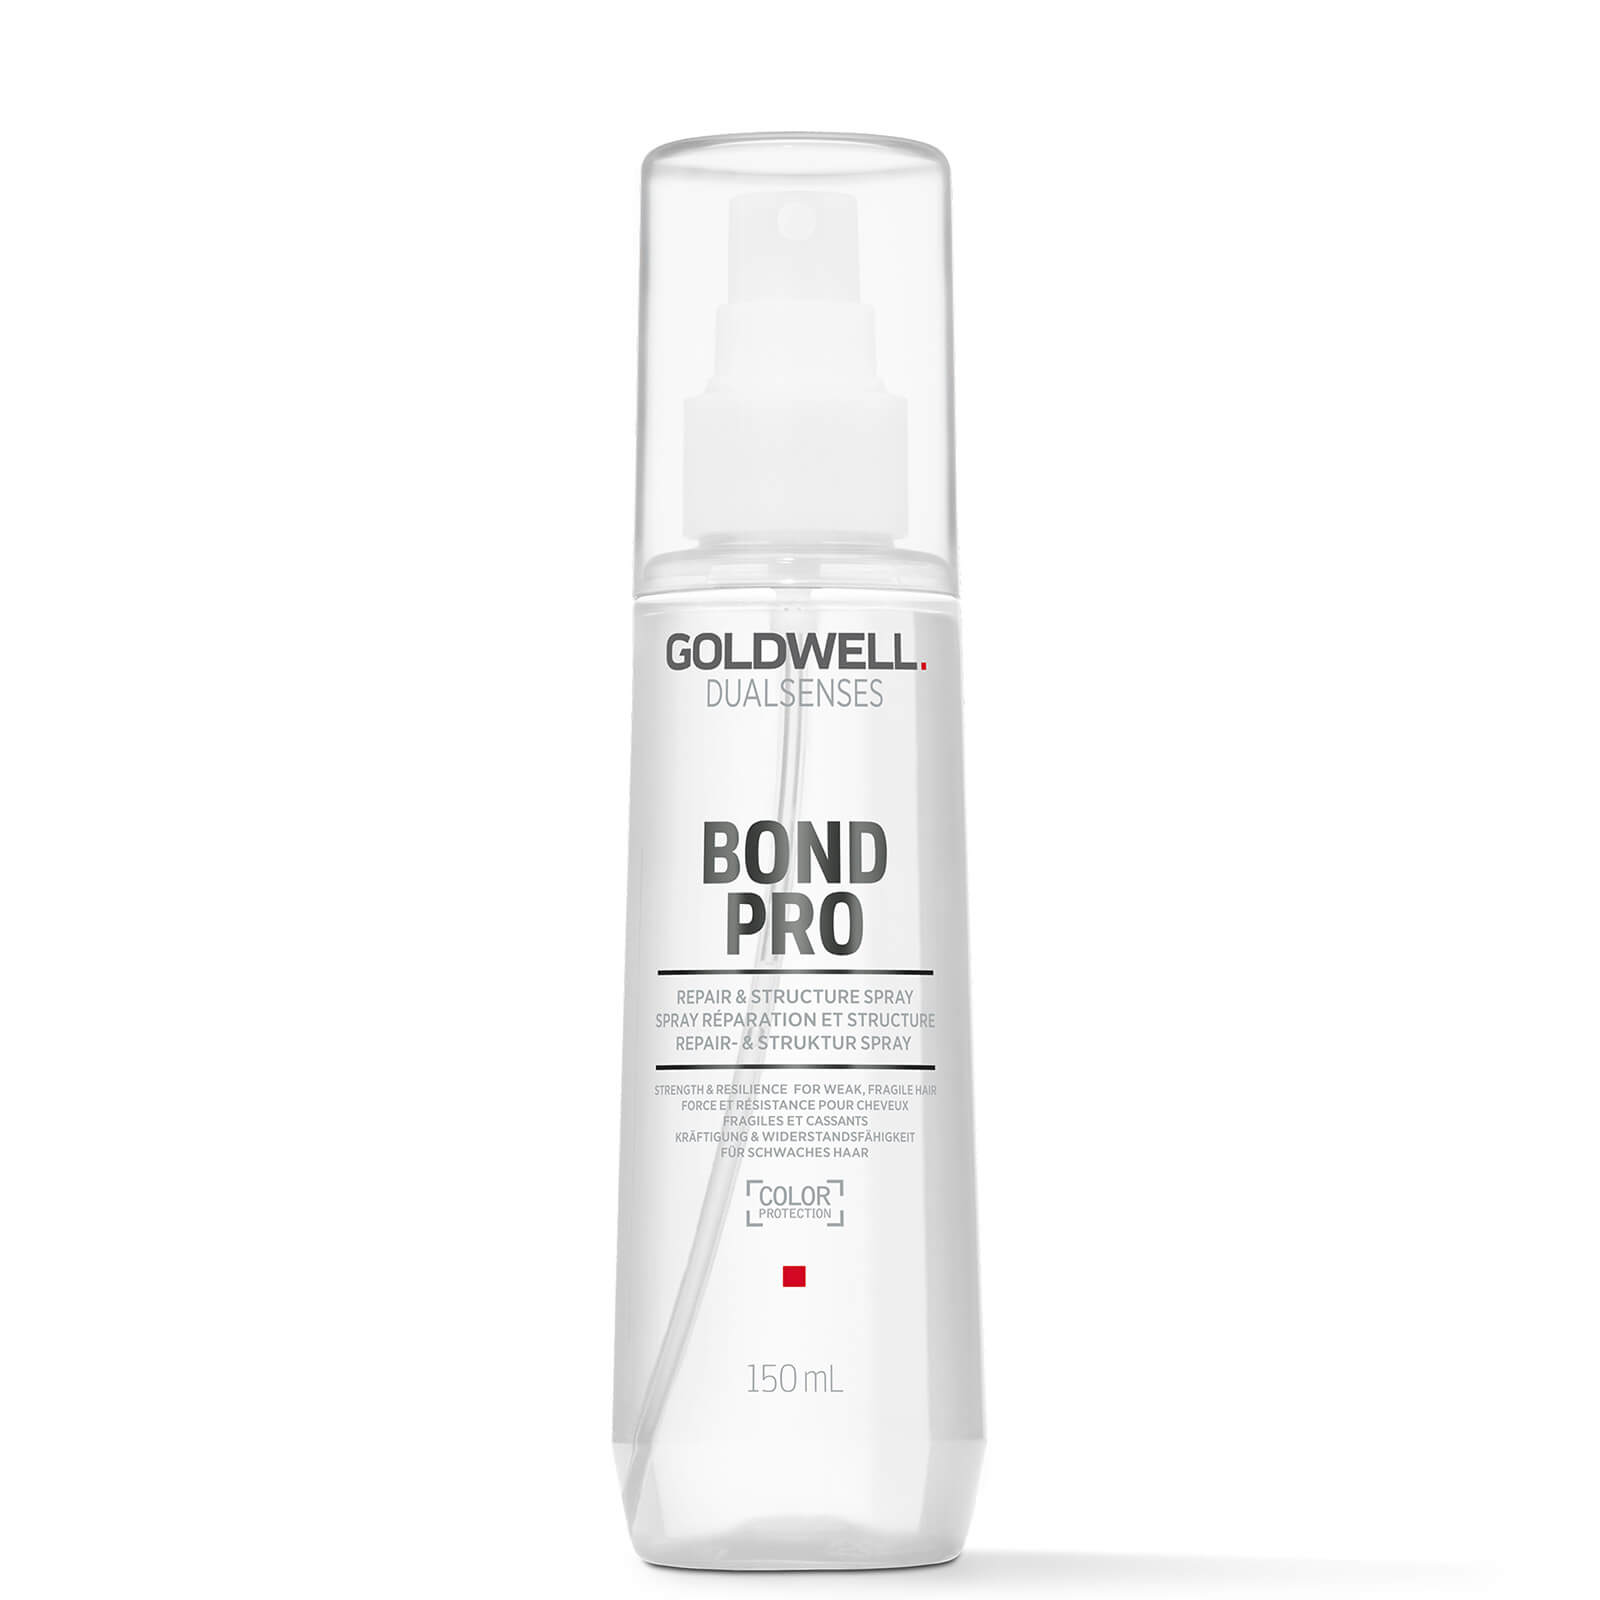 Goldwell BondPro+ Repair and Structure Spray 150ml